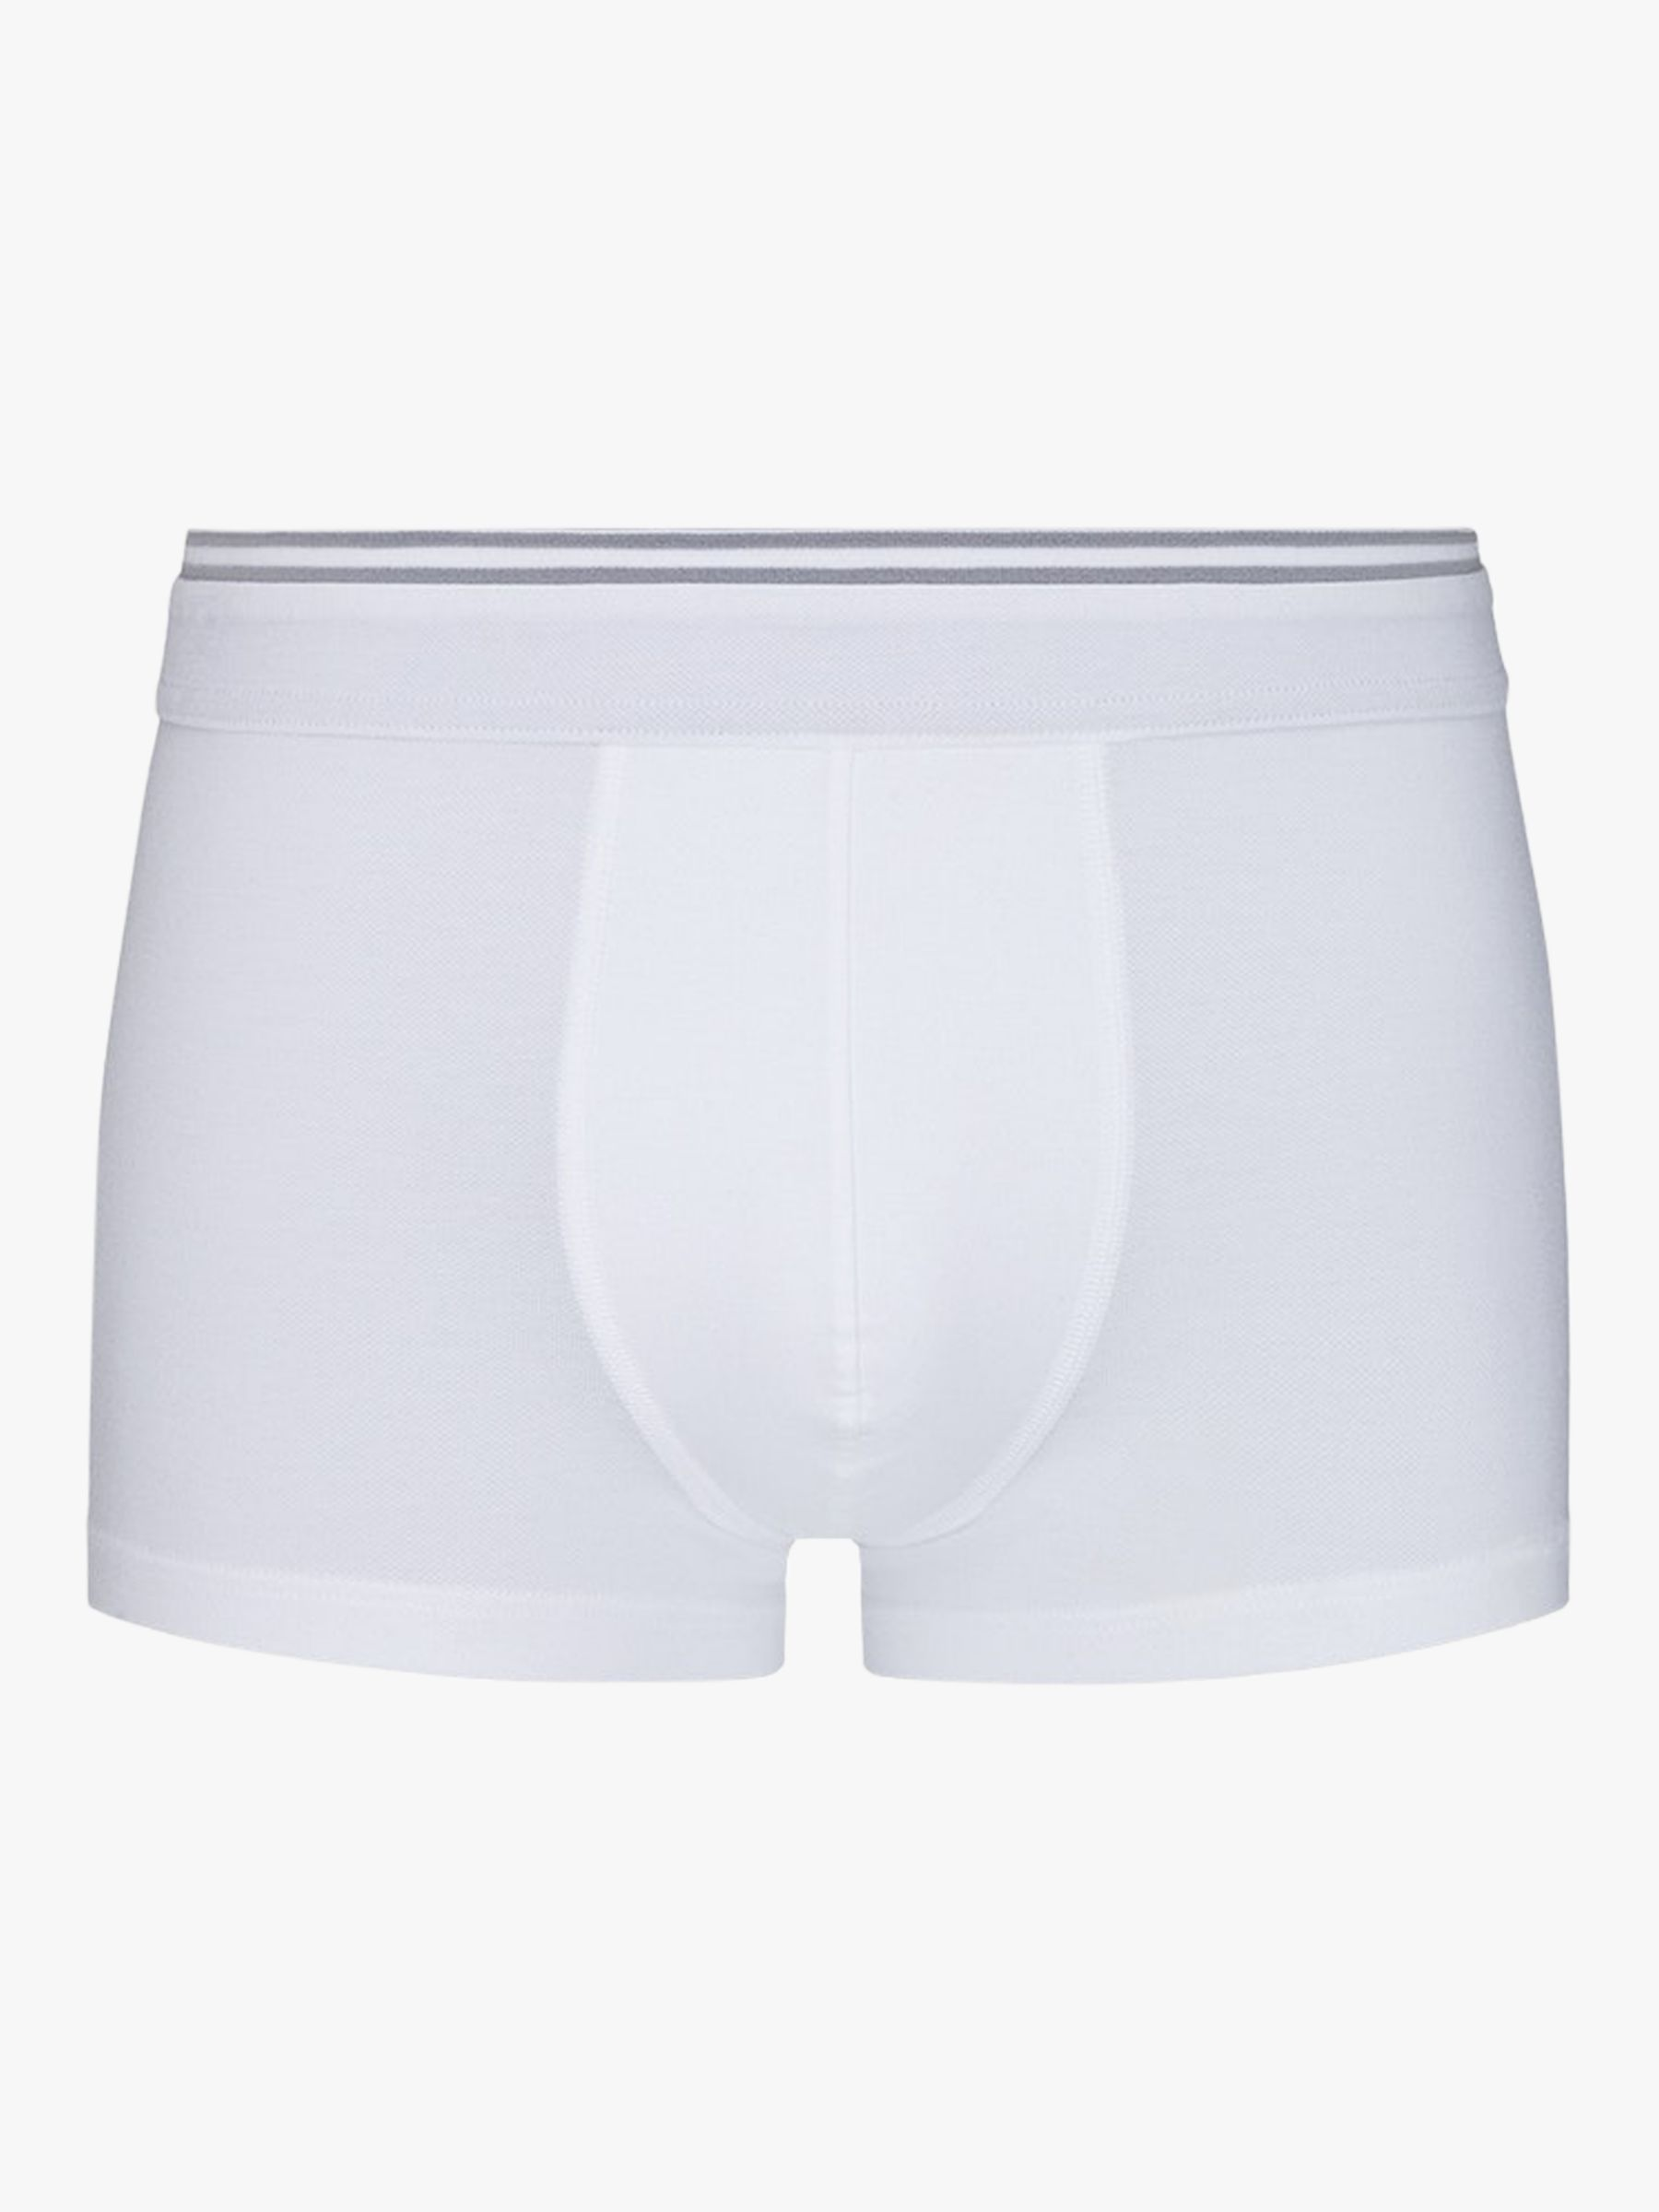 Hanro Hanro Liam Stretch Cotton Trunks, White